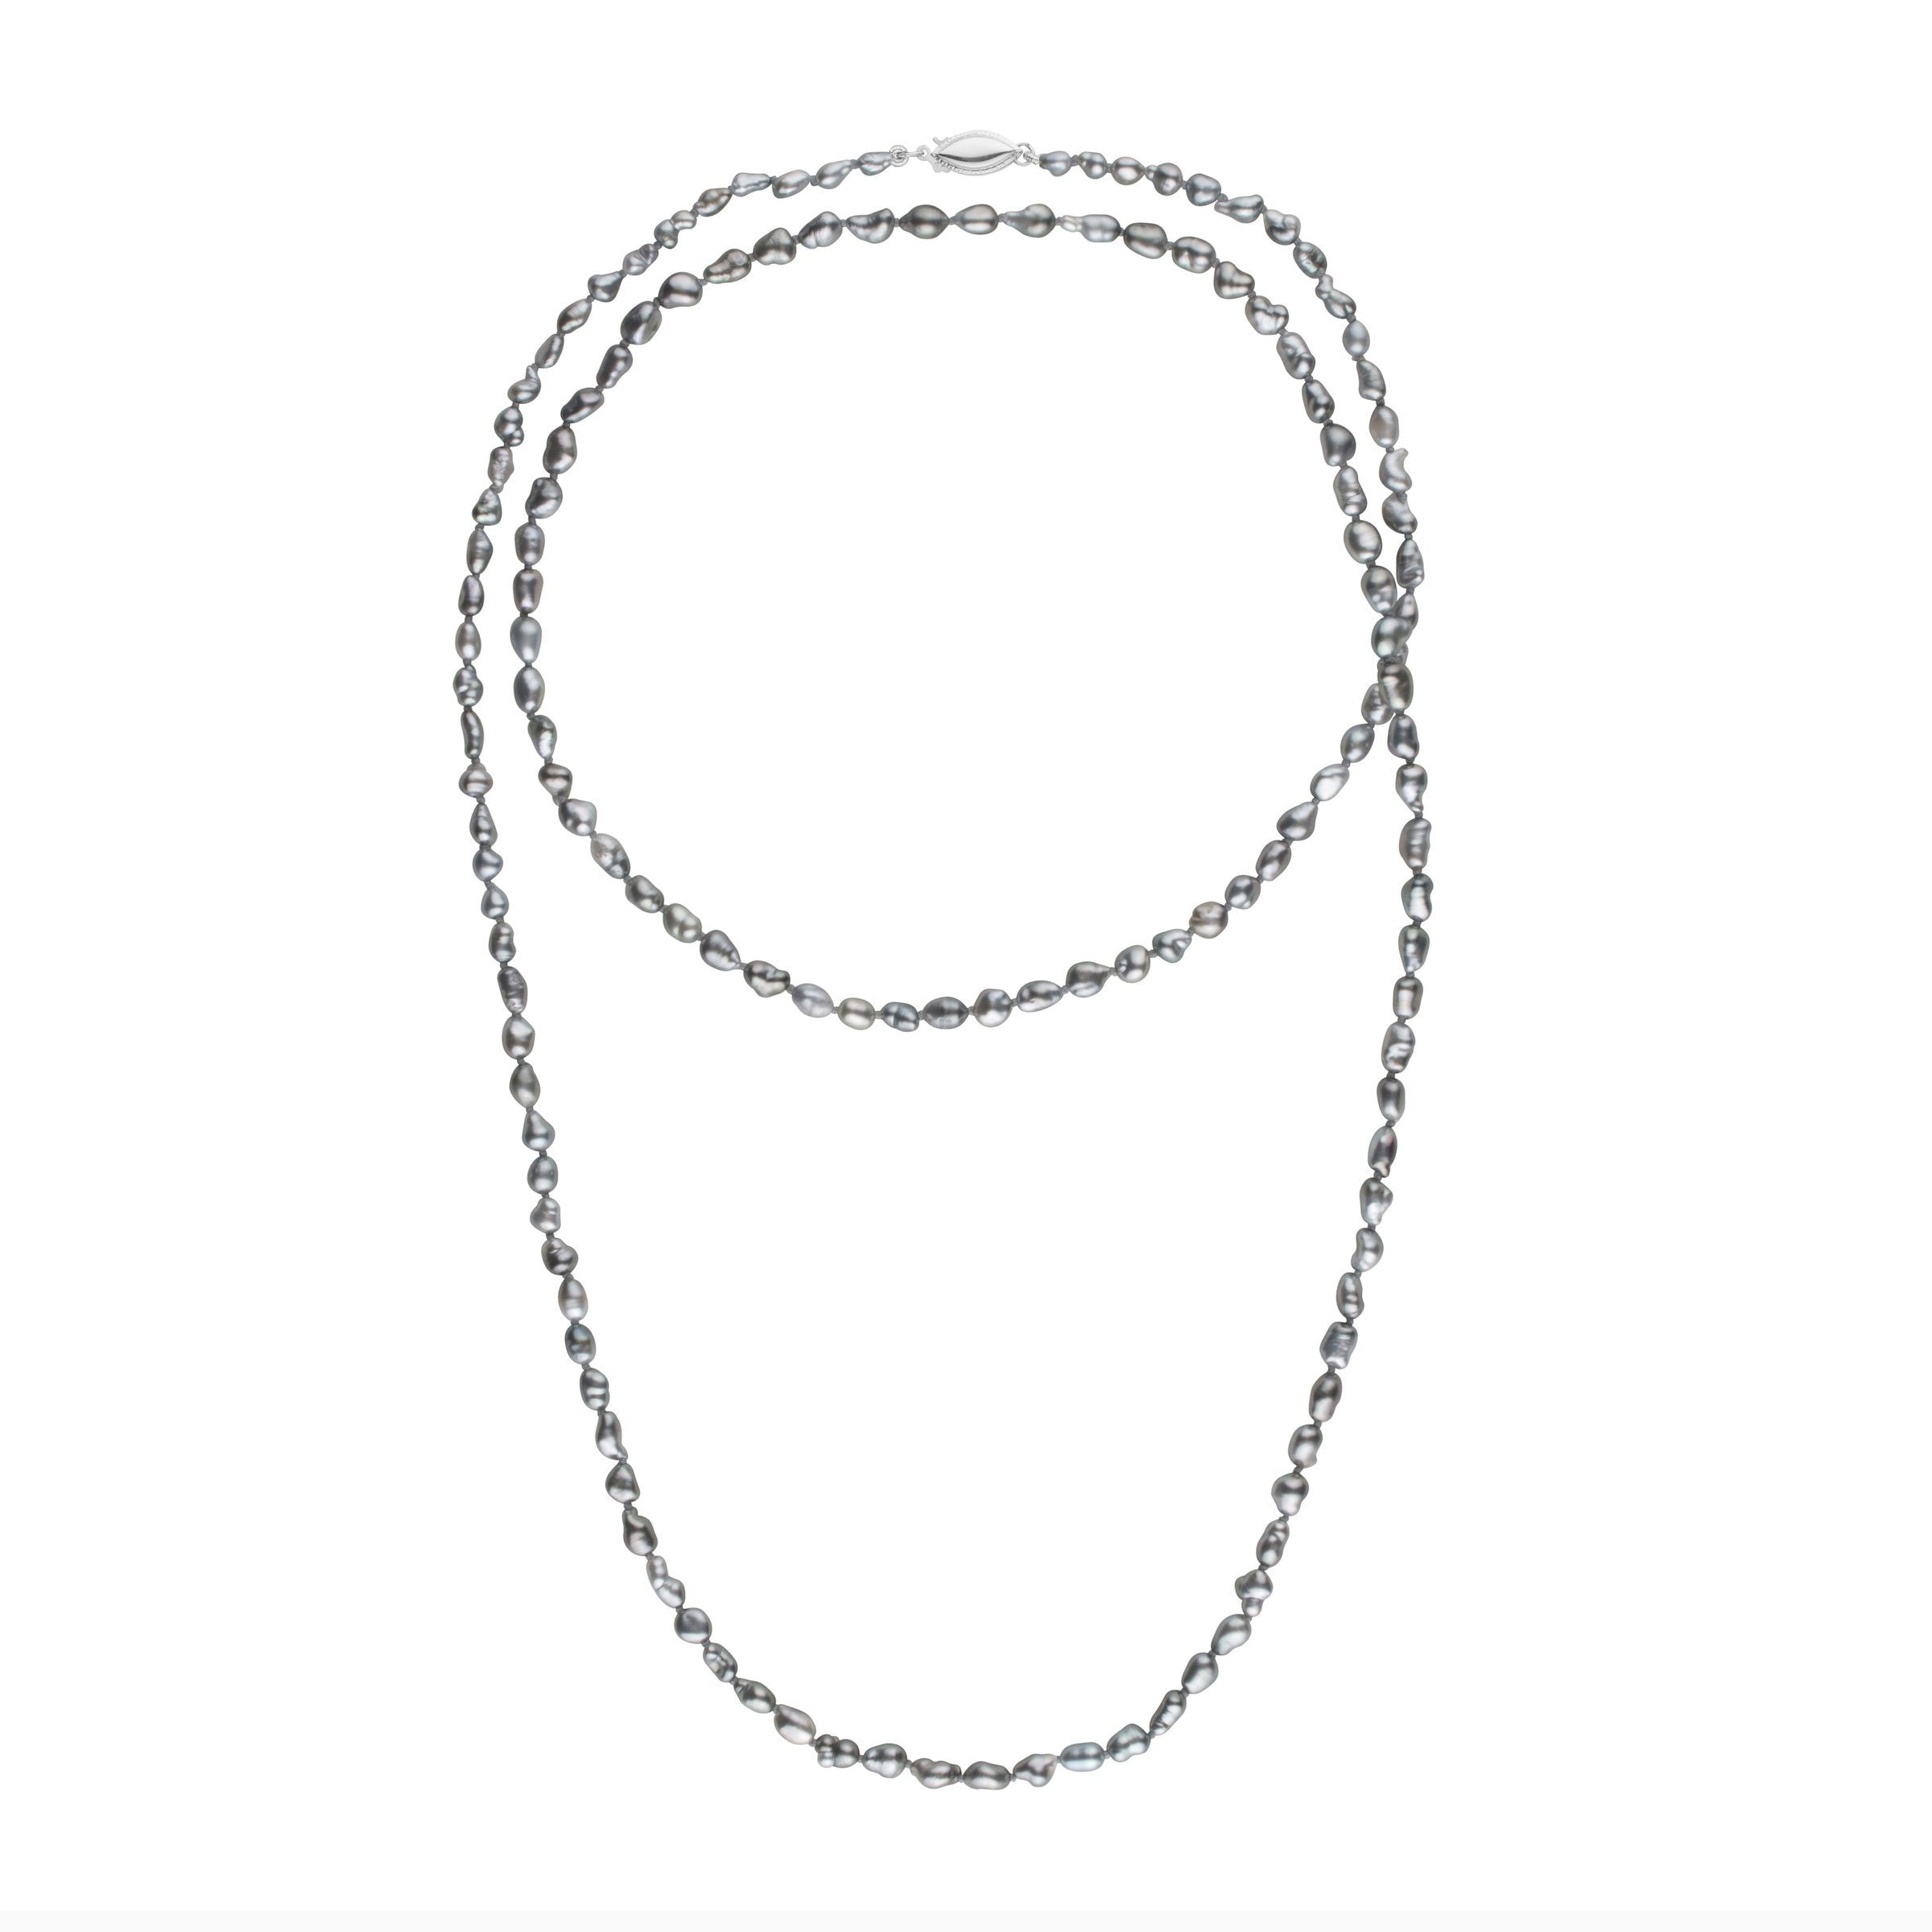 3.0-4.5 mm 35 Inch Keshi Tahitian Pearl Necklace